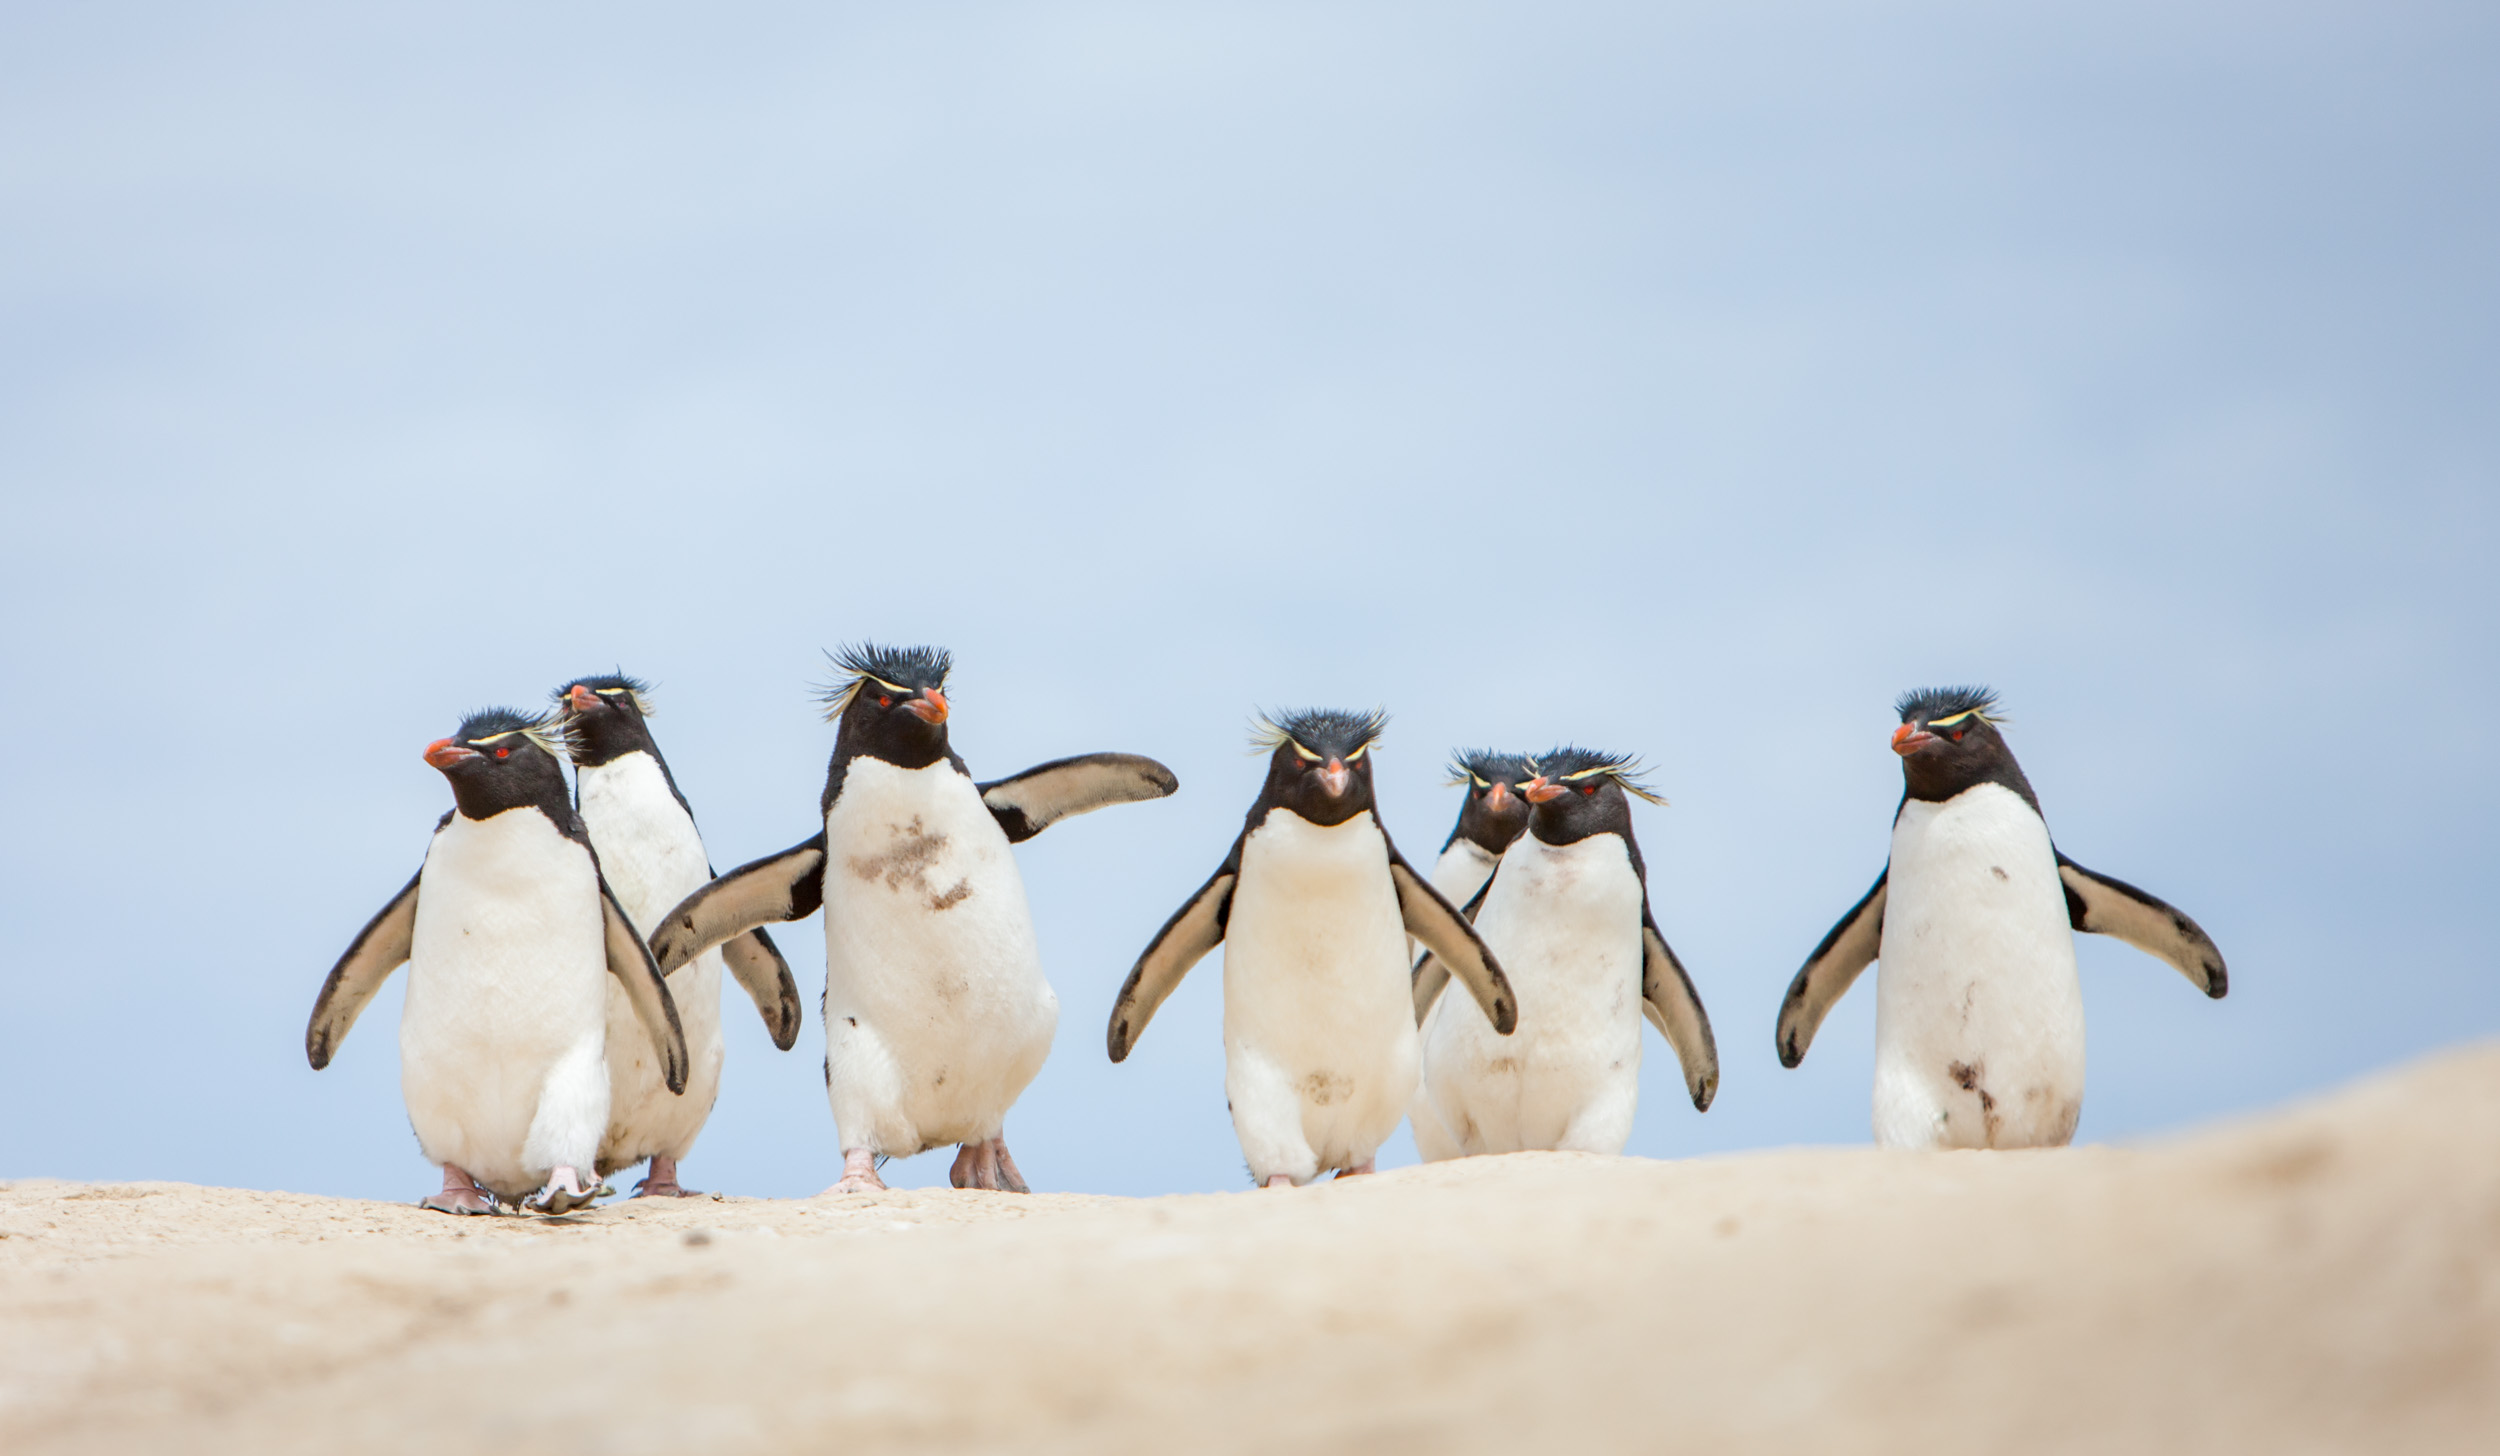 muench-workshops-falklands-south-georgia-antarctica-will-burrard-lucas-1.jpg